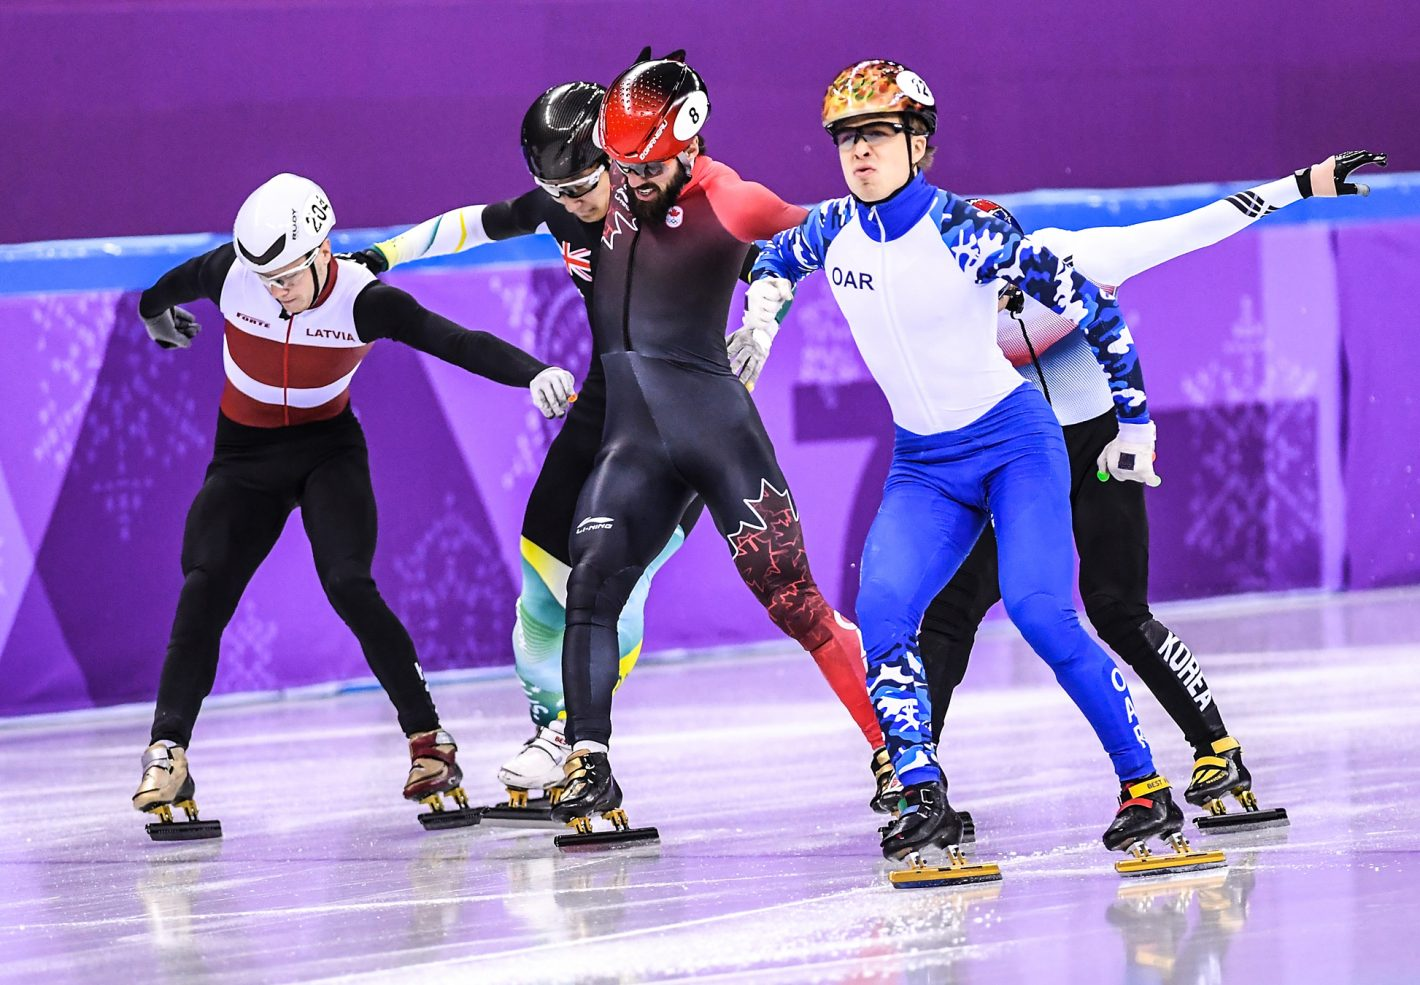 Skaters compete to cross the finish line during the 1st group of Men's 1,500m Semifinal on February 10, 2018. Nikon D5 | AF-S NIKKOR 300mm f/2.8G ED VR II | ISO 6400 | 1/5000 s | f/2.8 Copyright: An Ling Jung / China Sports